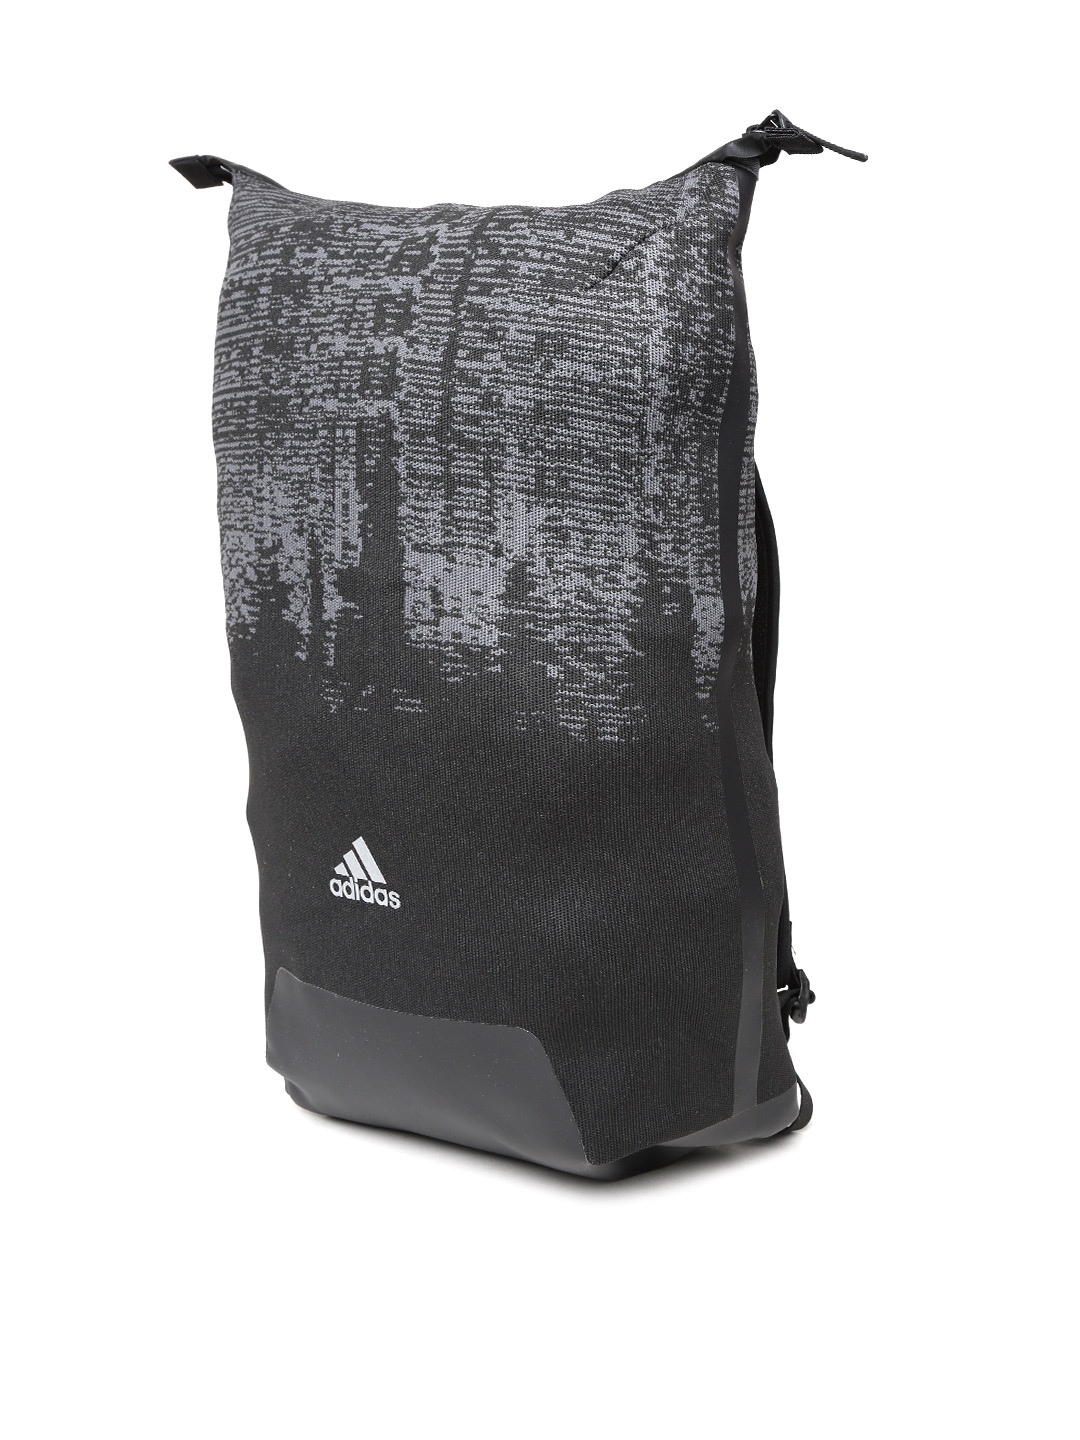 9205d4c3f1c4 Buy ADIDAS Unisex Black   Grey Icon Knitted Printed Backpack ...